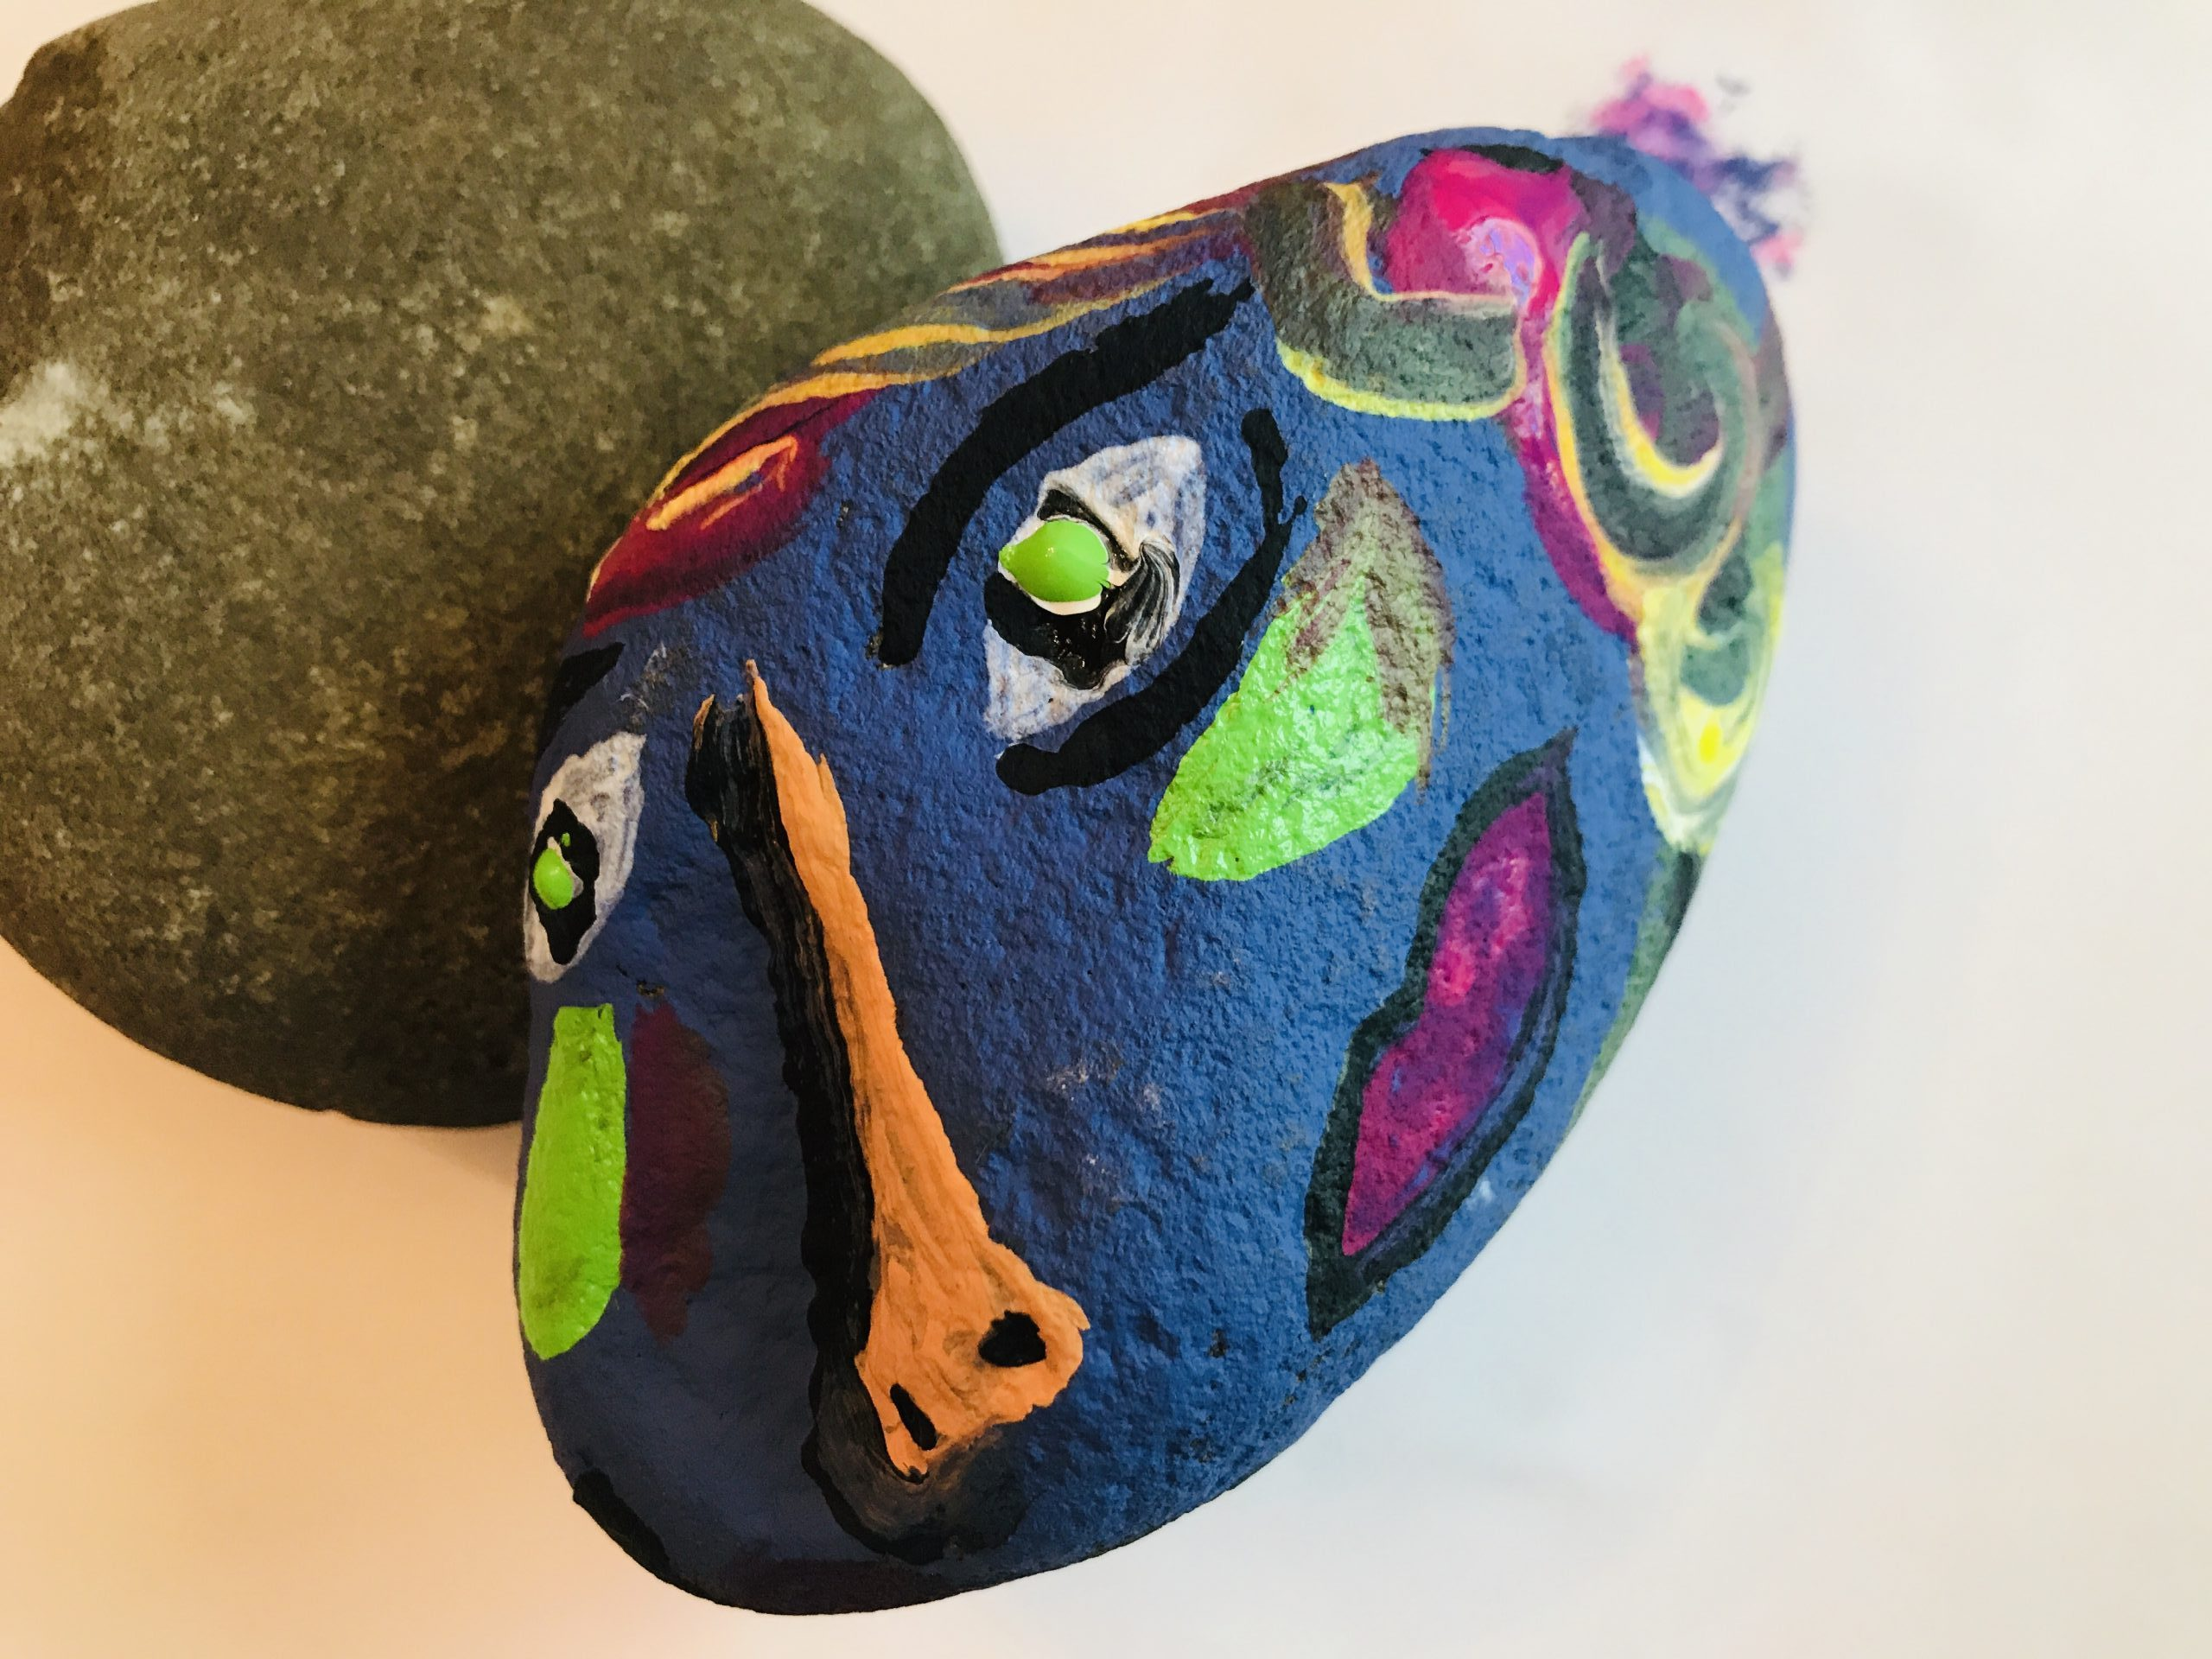 Face painted on a rock, with another non paint rock behind